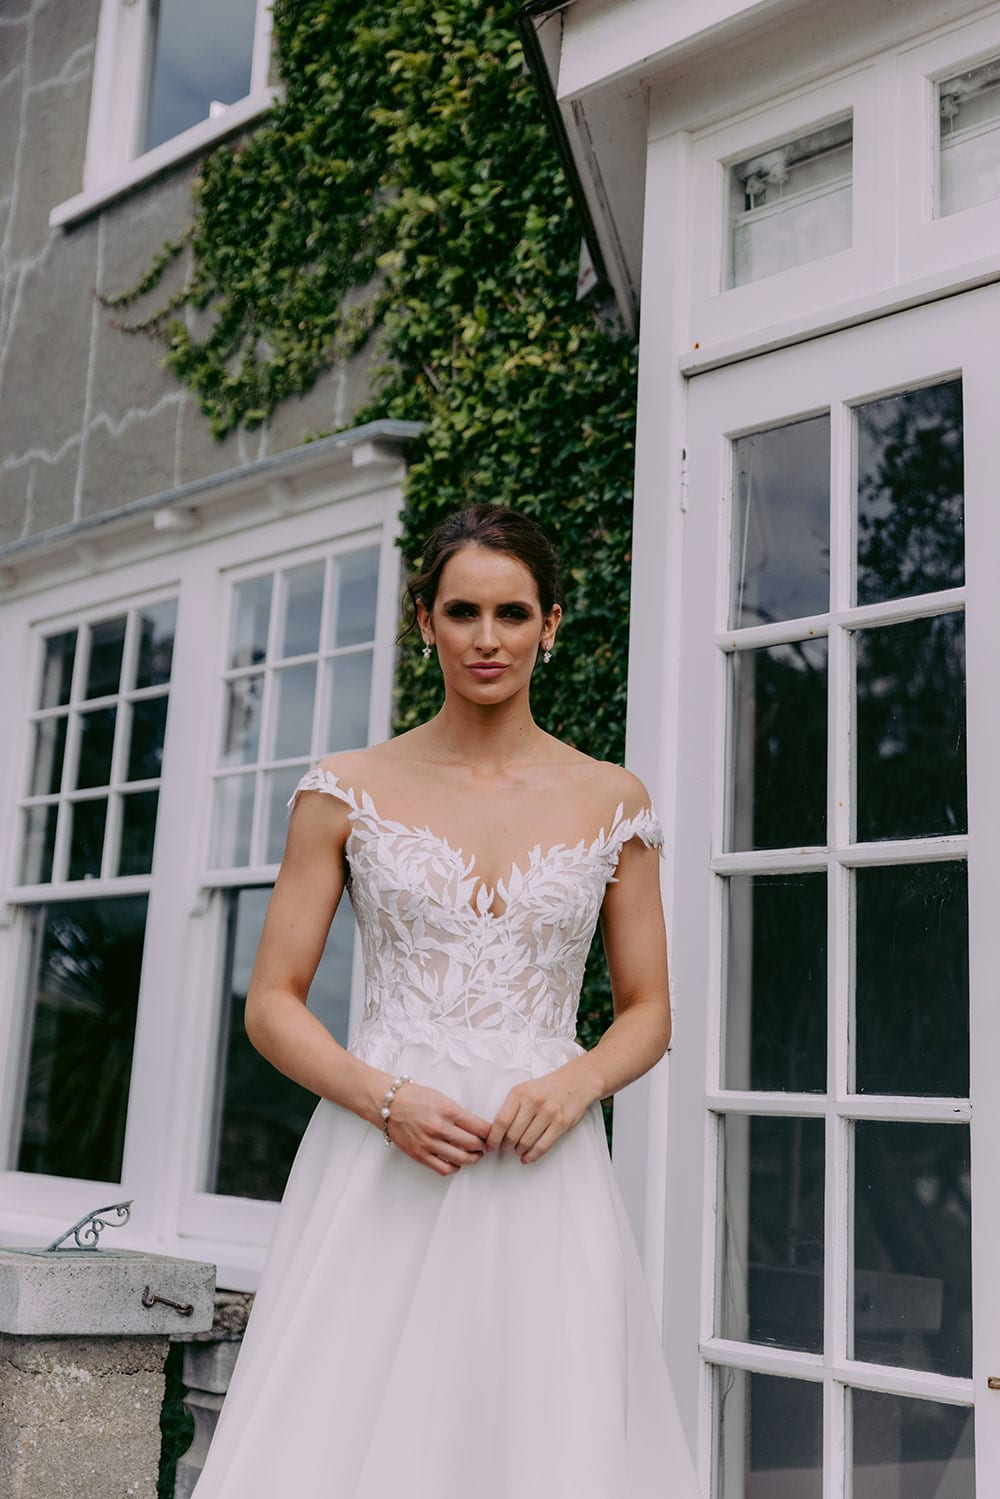 Ariana Wedding gown from Vinka Design - This gorgeous gown features delicate leaf lace hand-appliqued throughout the semi-sheer, structured bodice and up over the shoulder and skirt made of dreamy satin organza layers. Model wearing gown on steps outside country home close up of lace detail on bodice..